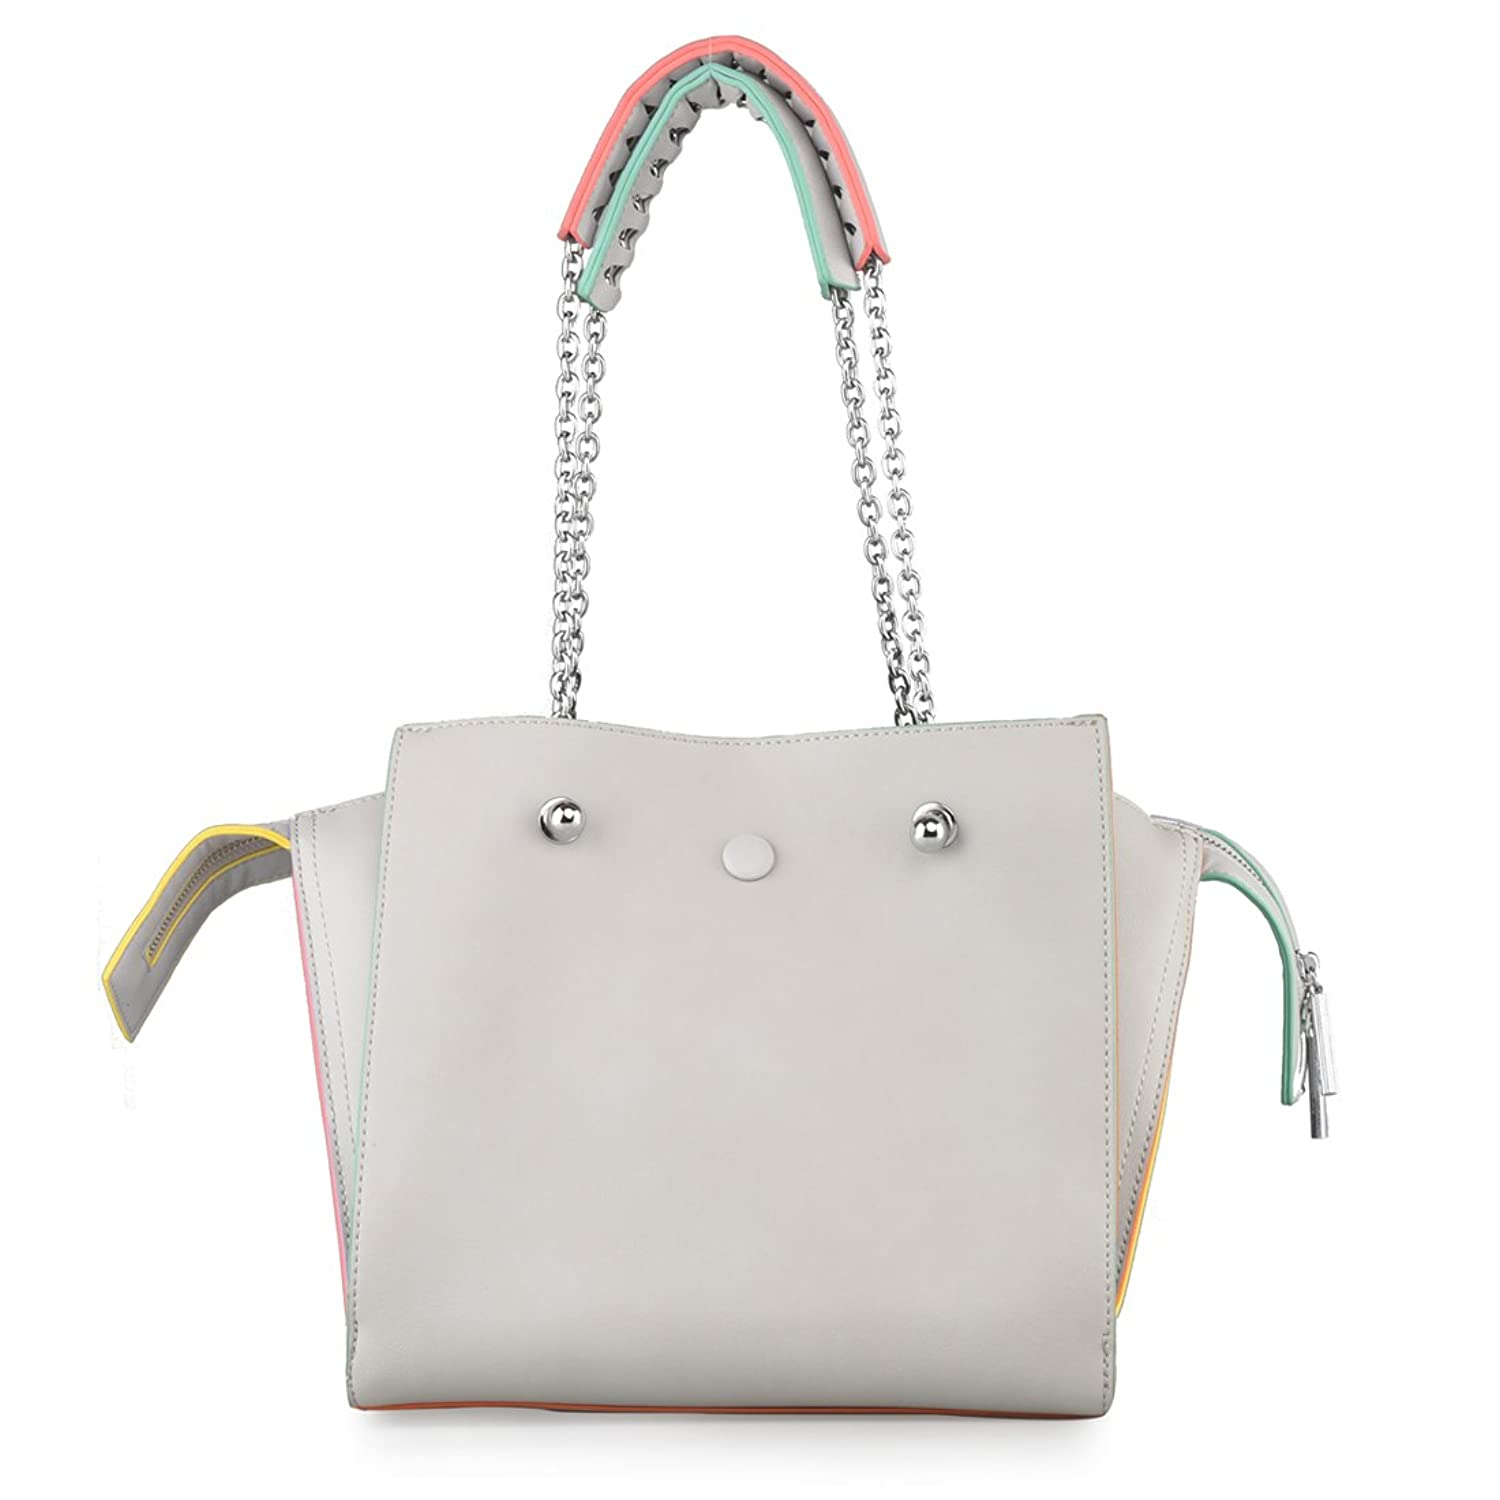 7a928686ee0c VERABELLE 2018 new Large Capacity Women s Ladies Casual Daily Purse Smiling  Face chain strap Shoulder Tote Shopper Handbag Bag